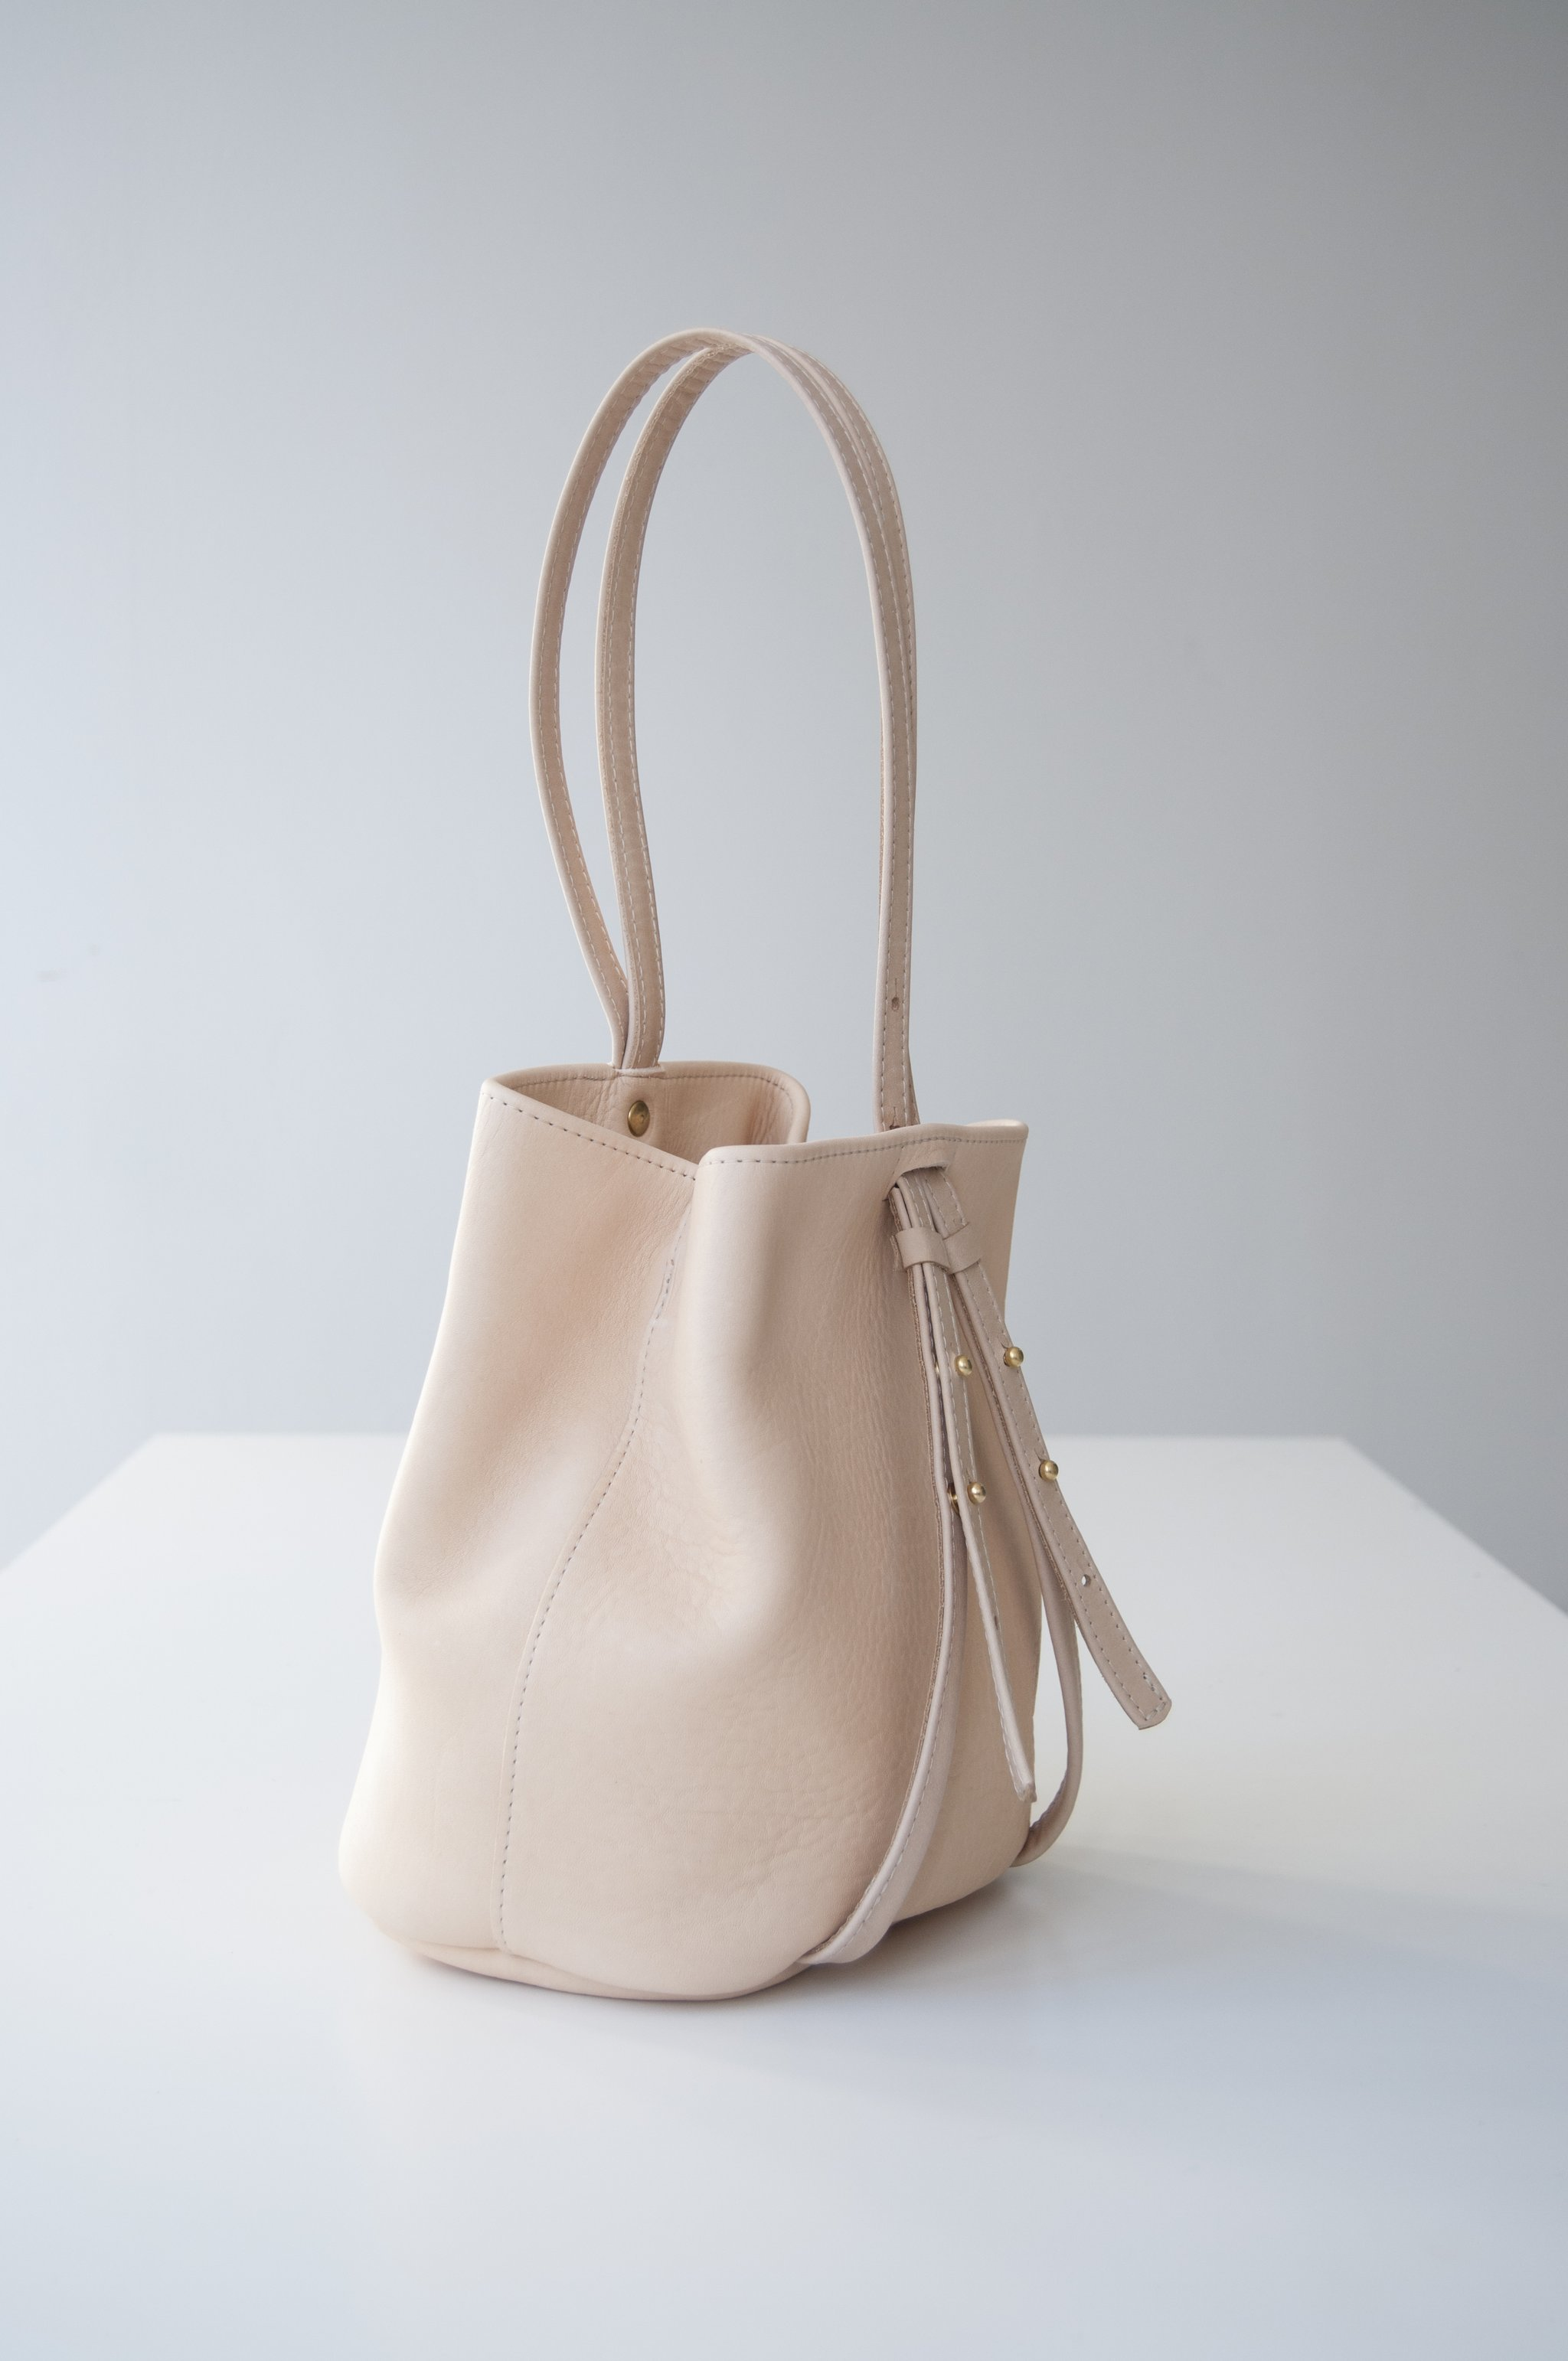 CHC - Small Aura Bucket Bag / Prices VaryThis is the perfect bucket bag to take you anywhere this fall. The leather shifts this silhouette into fall, and all of it is sourced and produced in the United States from sustainable farms. They even dye their leather using vegetable dyes!